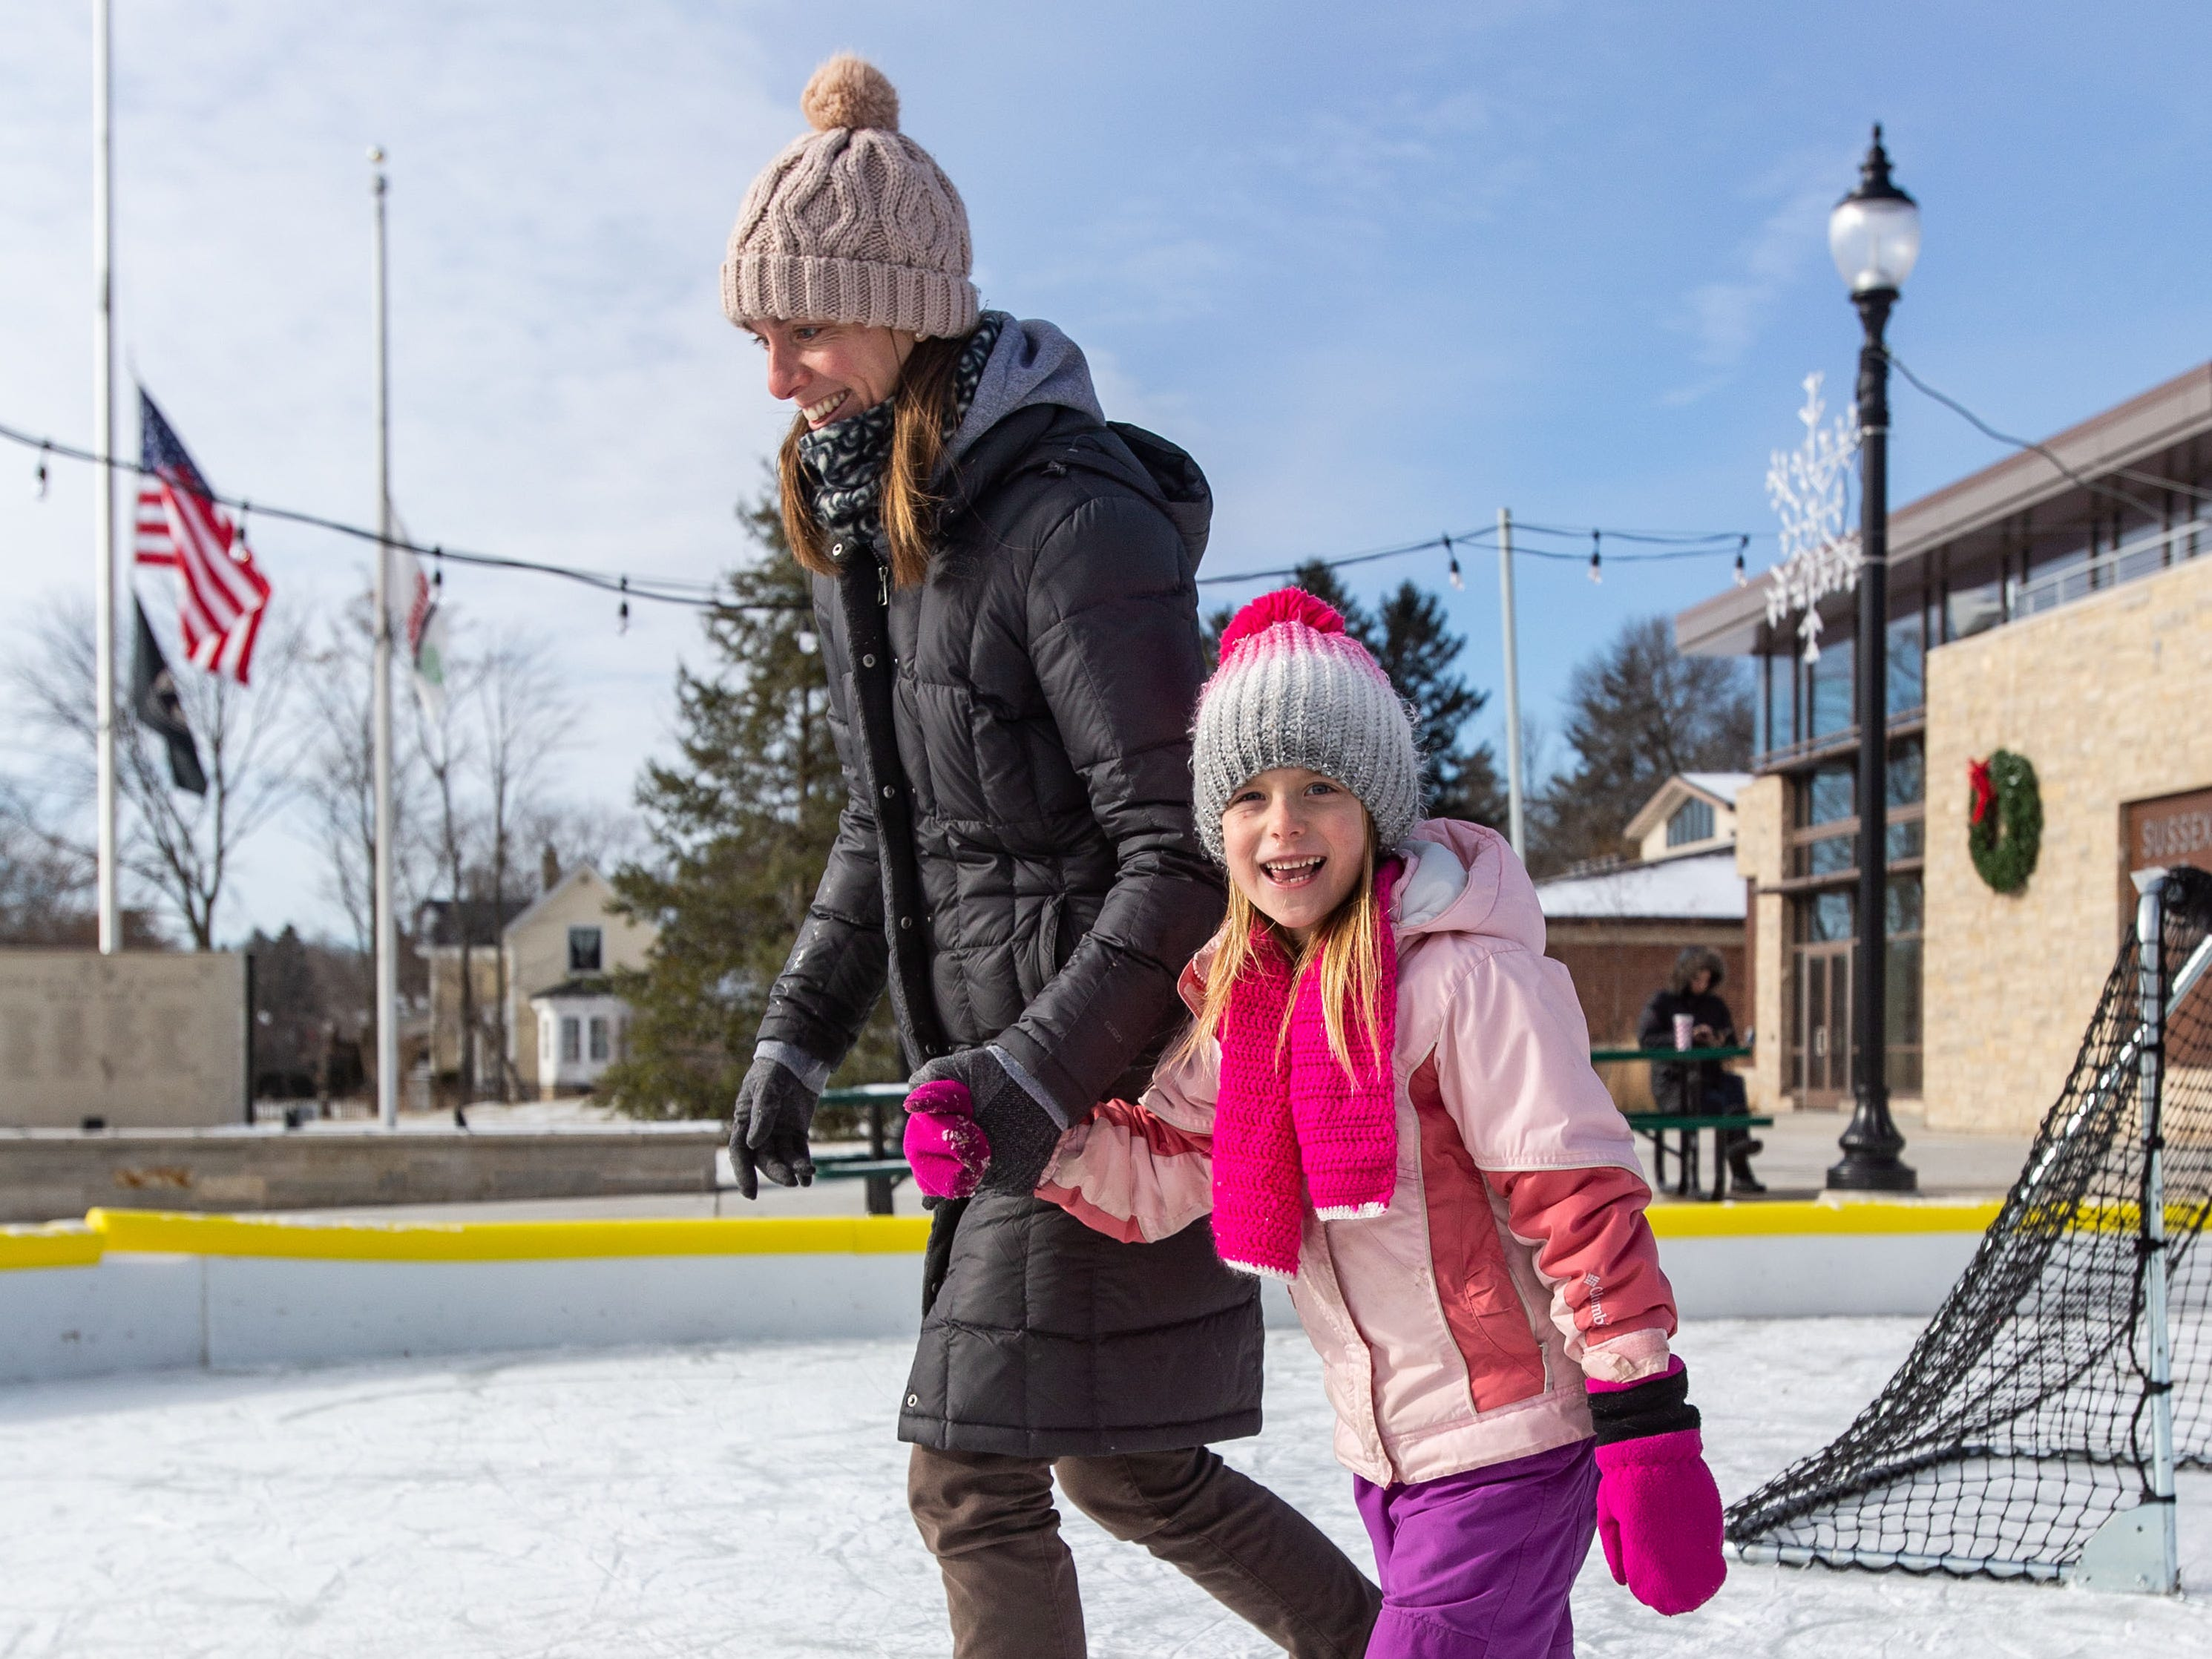 Five-year-old Nadia Weltzin and her mom Tanya of Sussex take a spin around the Sussex Civic Center ice rink on Sunday, Dec. 30, 2018. The rink is open seven days a week as weather permits. For hours and info visit villagesussex.org.